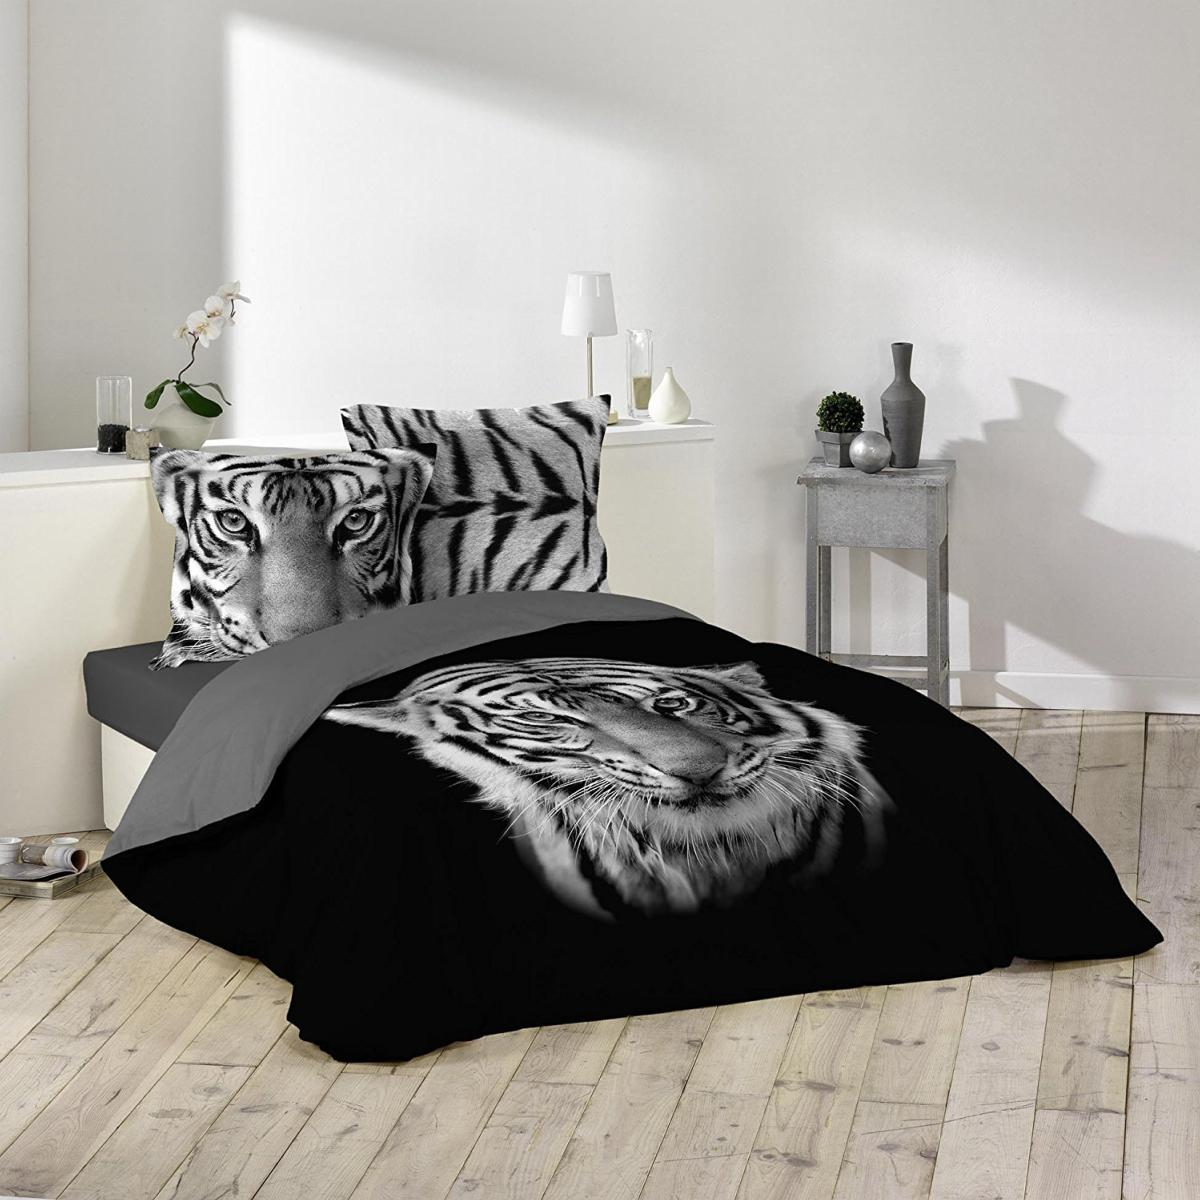 parure housse de couette tigre sherkan noir et blanc 100 coton avec dessin place j k markets. Black Bedroom Furniture Sets. Home Design Ideas